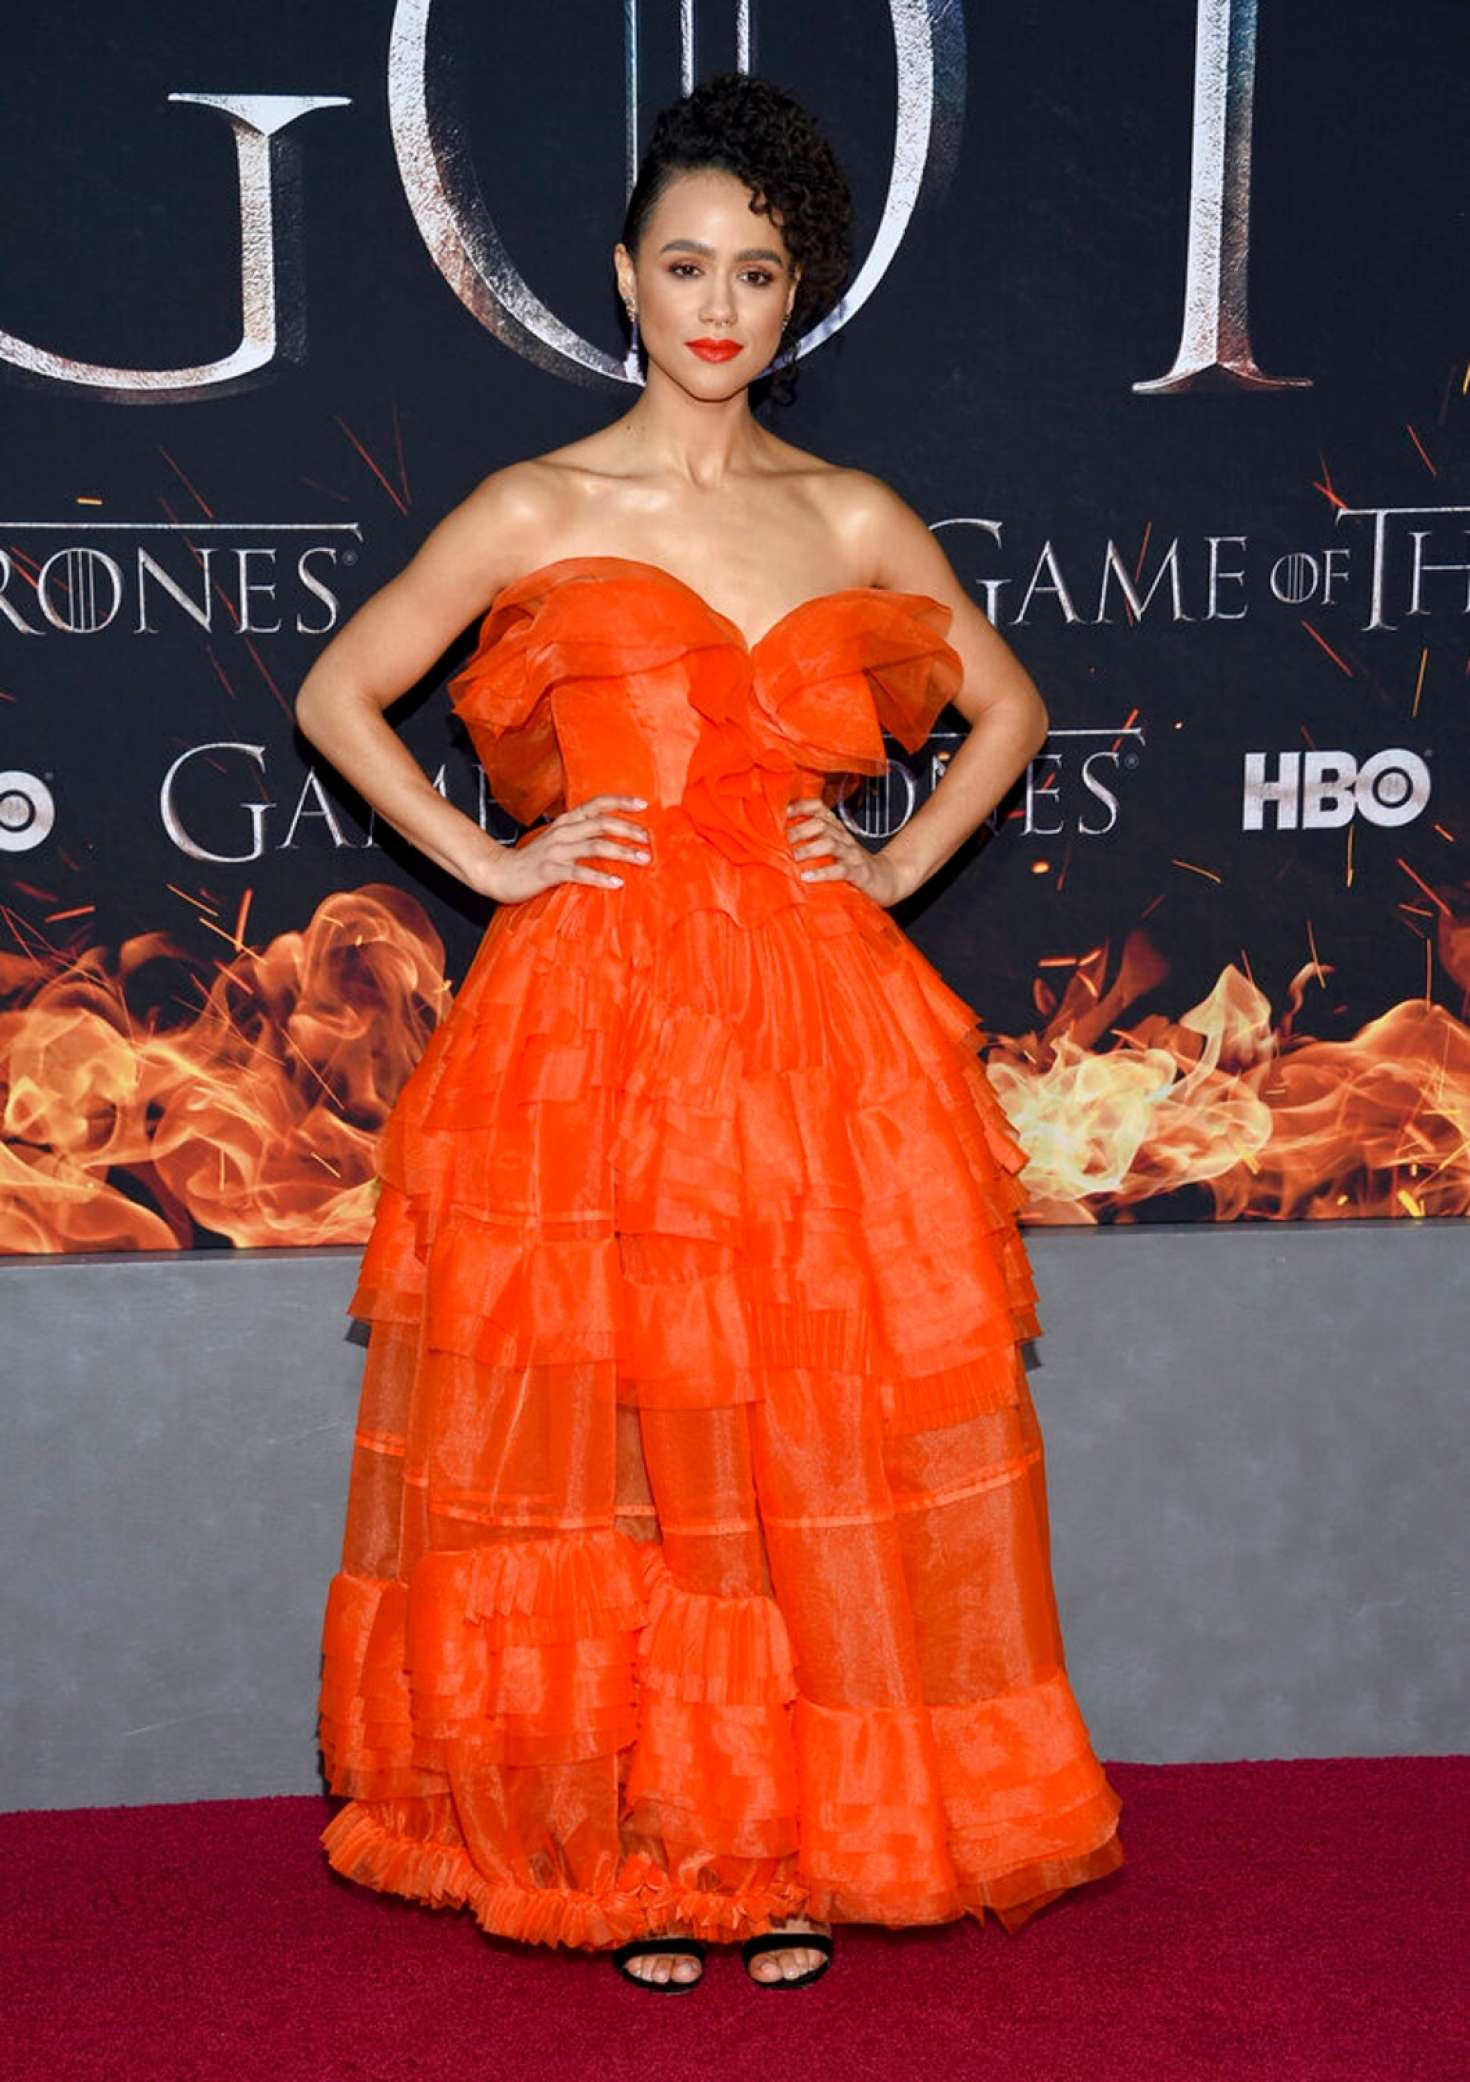 Nathalie Emmanuel 2019 : Nathalie Emmanuel: Game of Thrones Season 8 Premiere -04